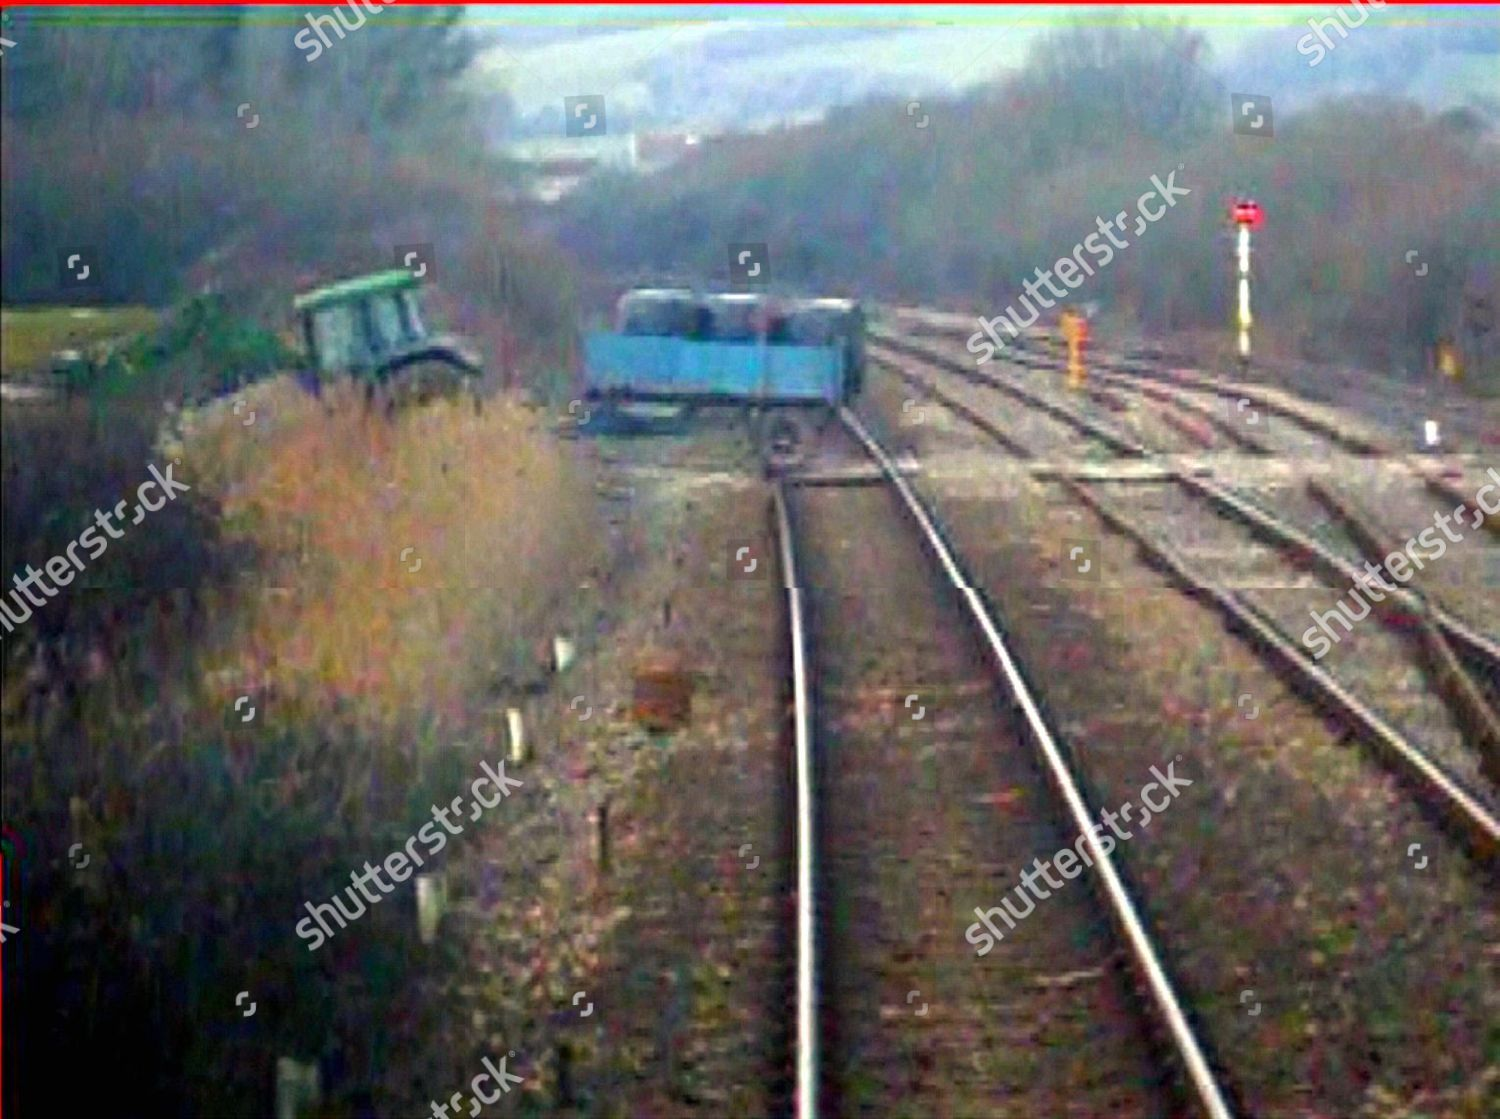 Video grab showing train drivers view moments Editorial